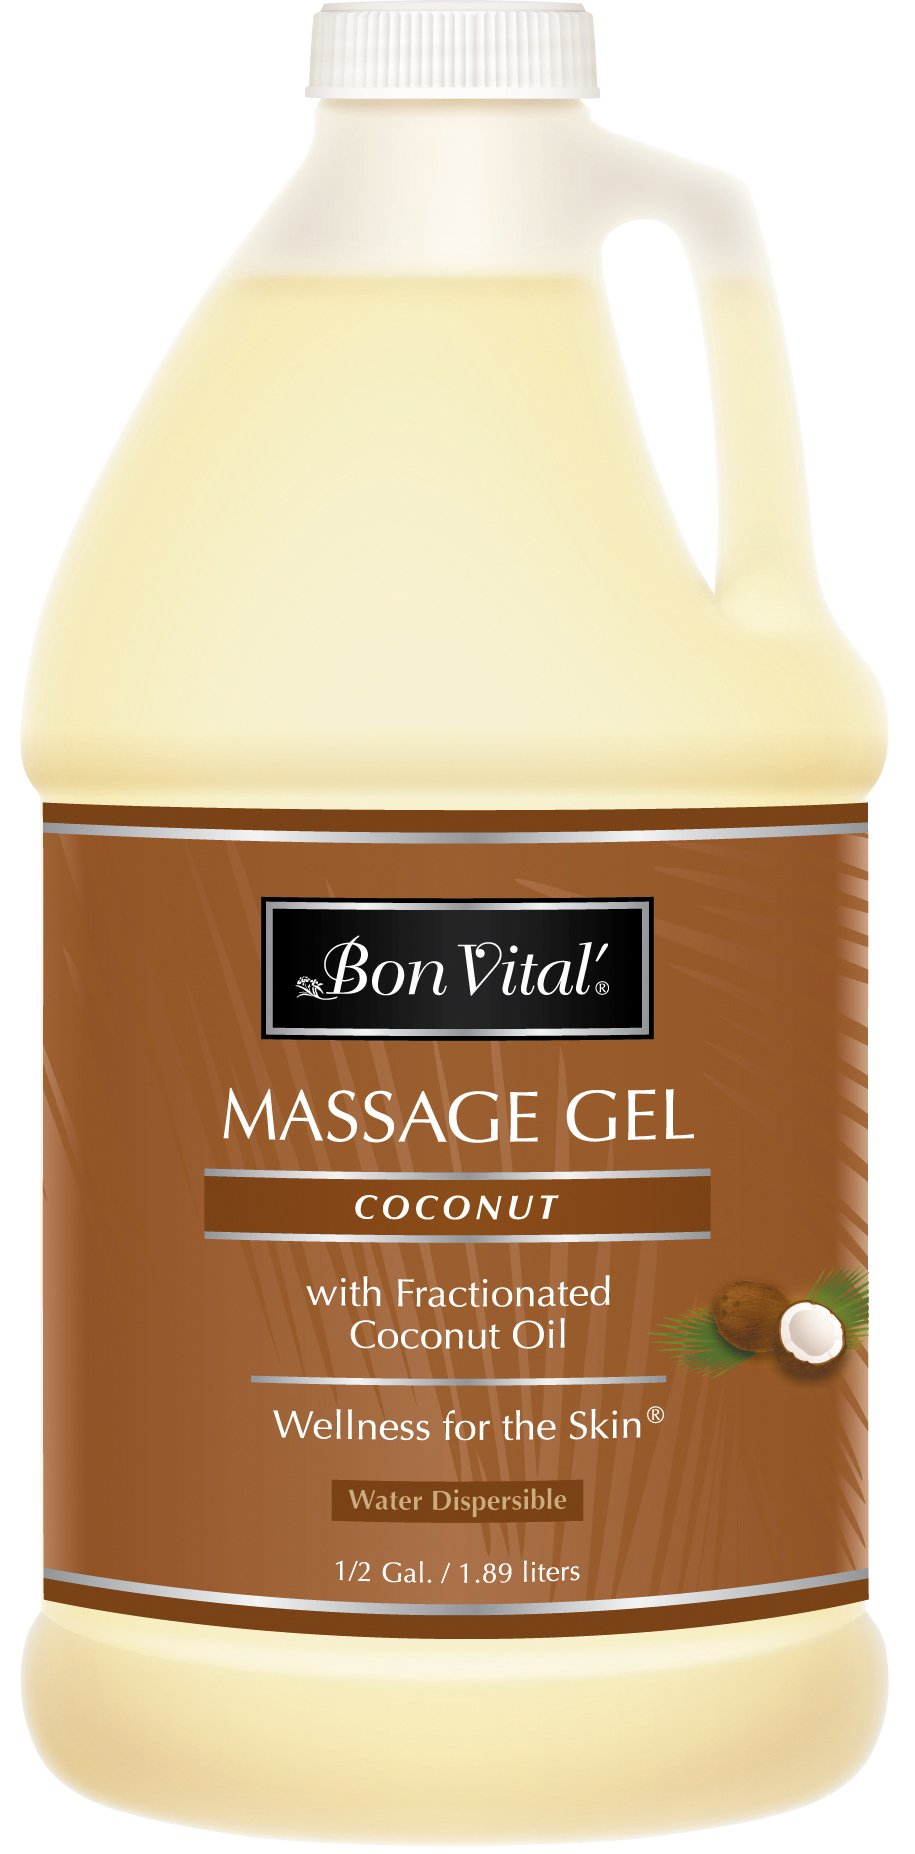 Bon Vital' Coconut Massage Gel Made with 100% Pure Fractionated Coconut Oil, Great for At-Home Use in Relaxing Back Massages & Neck Massages, Moisturizes Skin Without Clogging Pores, 1/2 Gallon Bottle